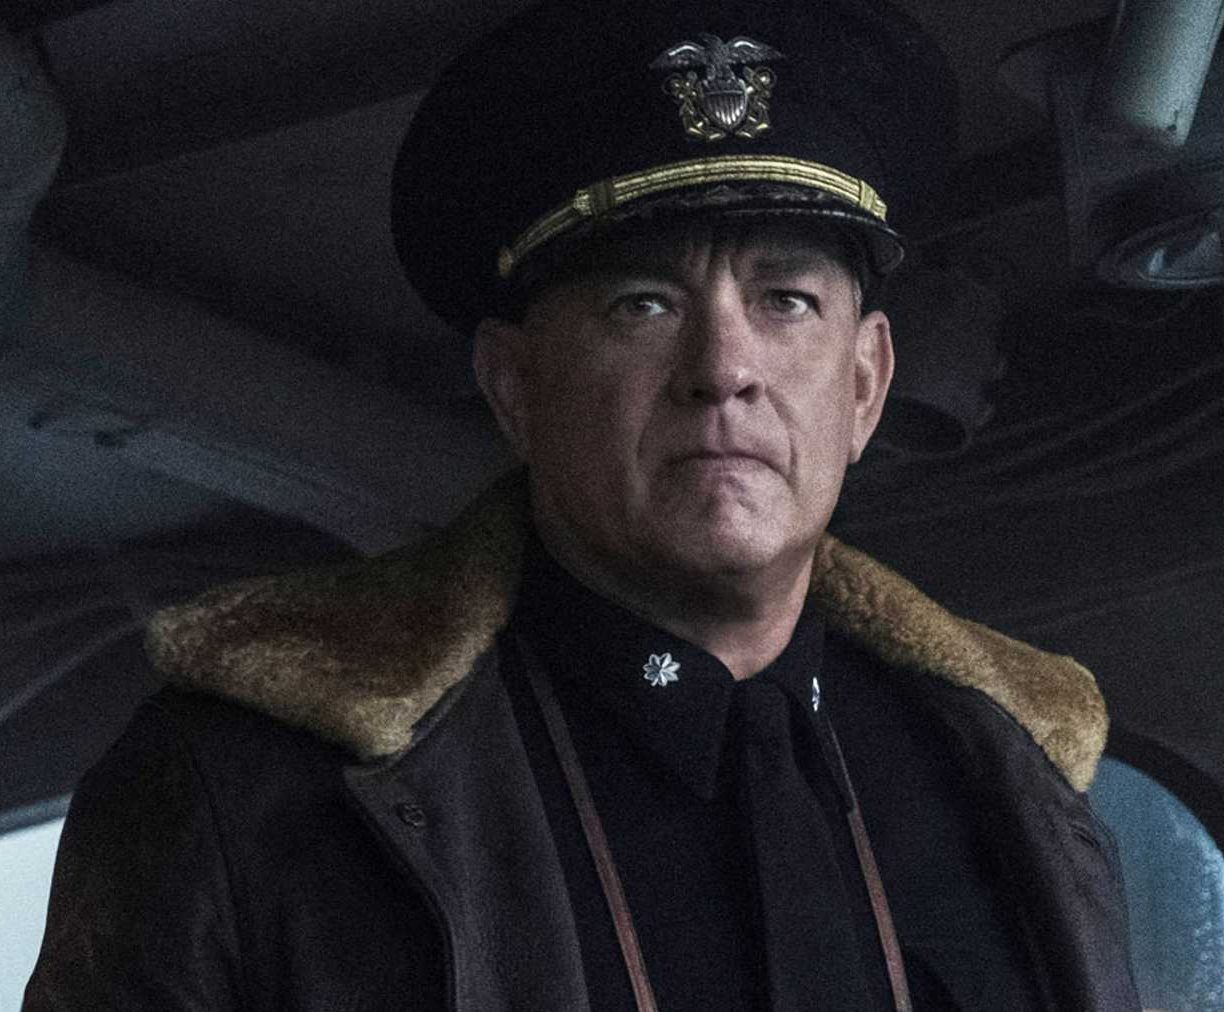 1 298 e1608542567934 10 Things You Probably Didn't Know About Tom Hanks